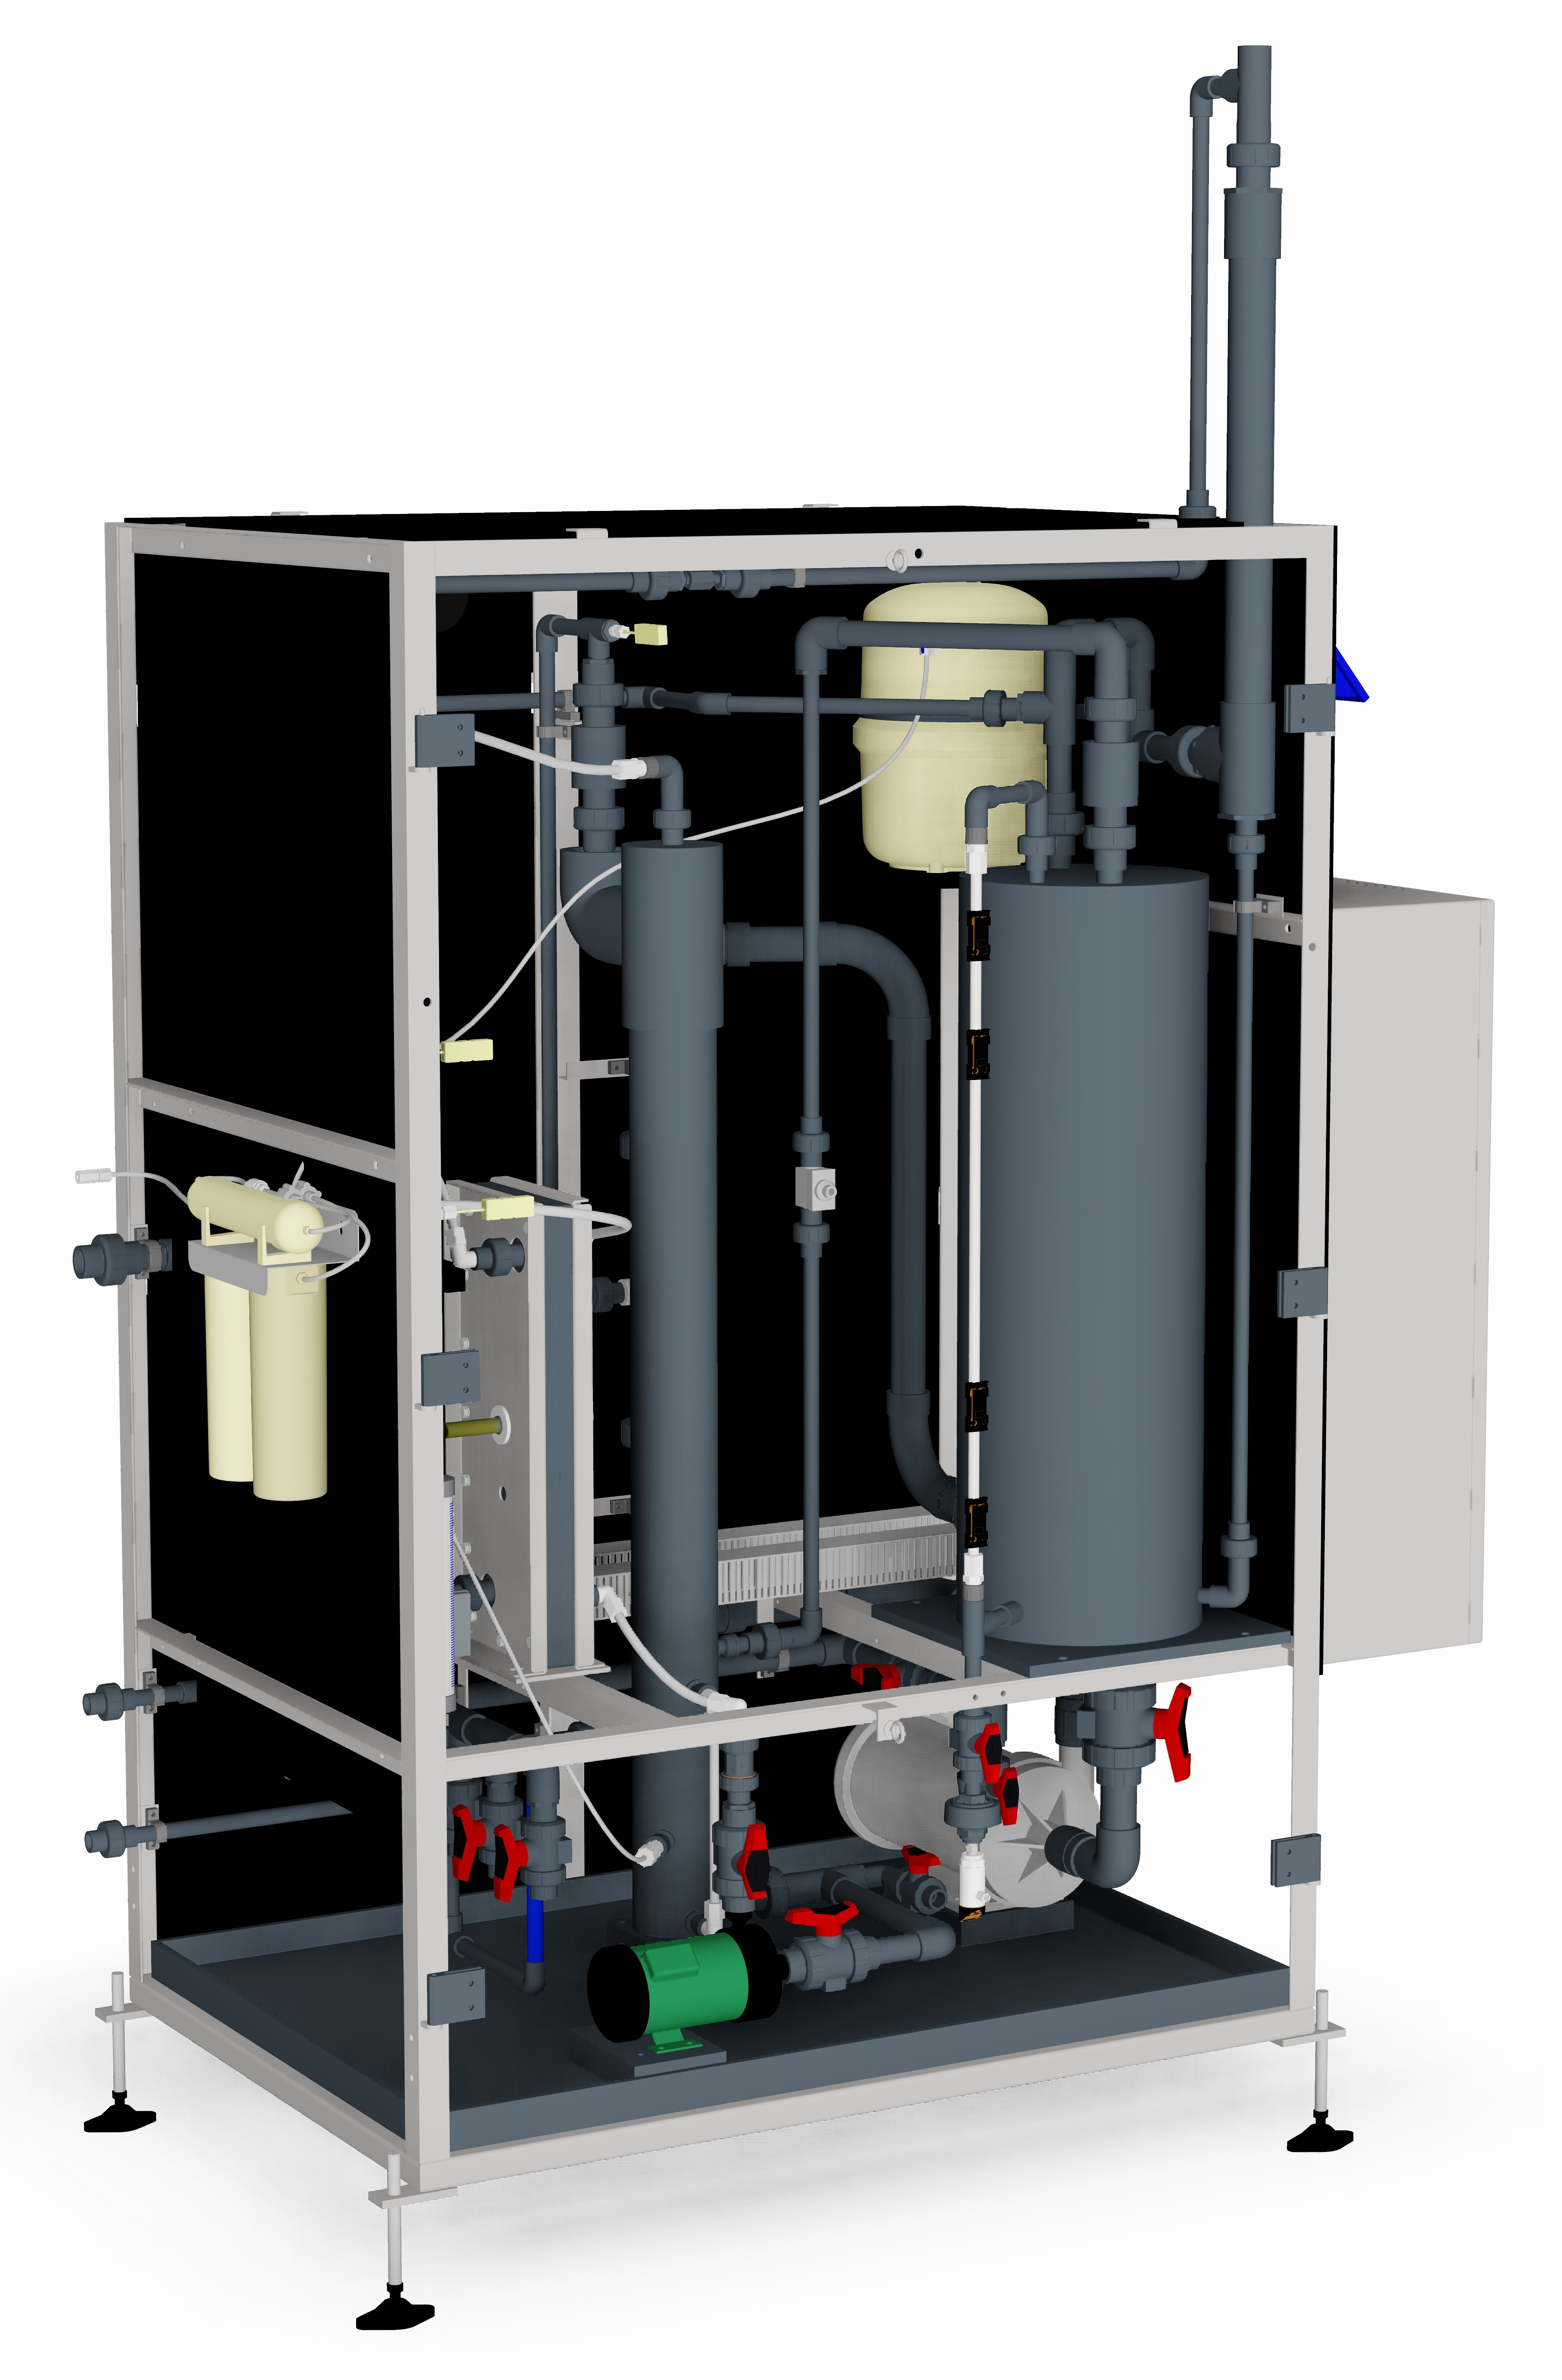 Chlorine Dioxide Generation and Dosing Systems: chemical and